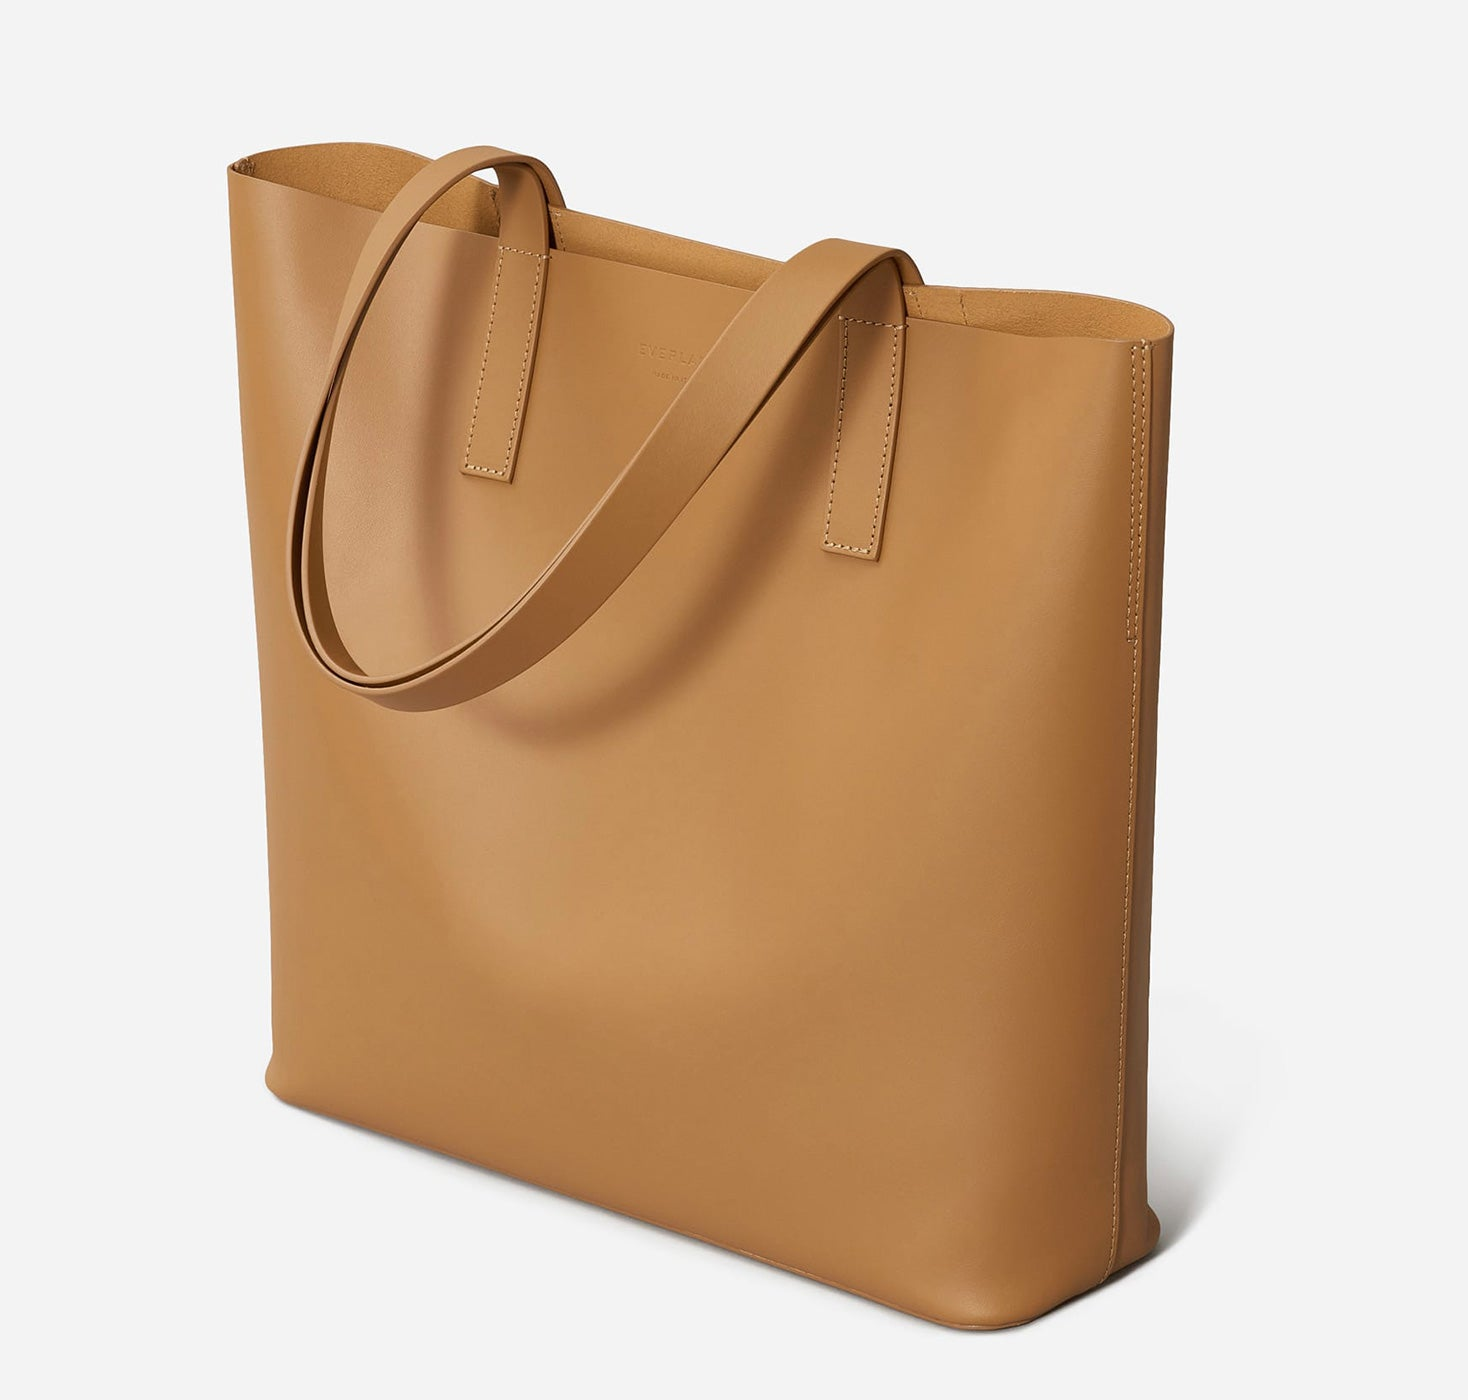 Everlane - brown leather- square everyday tote bag